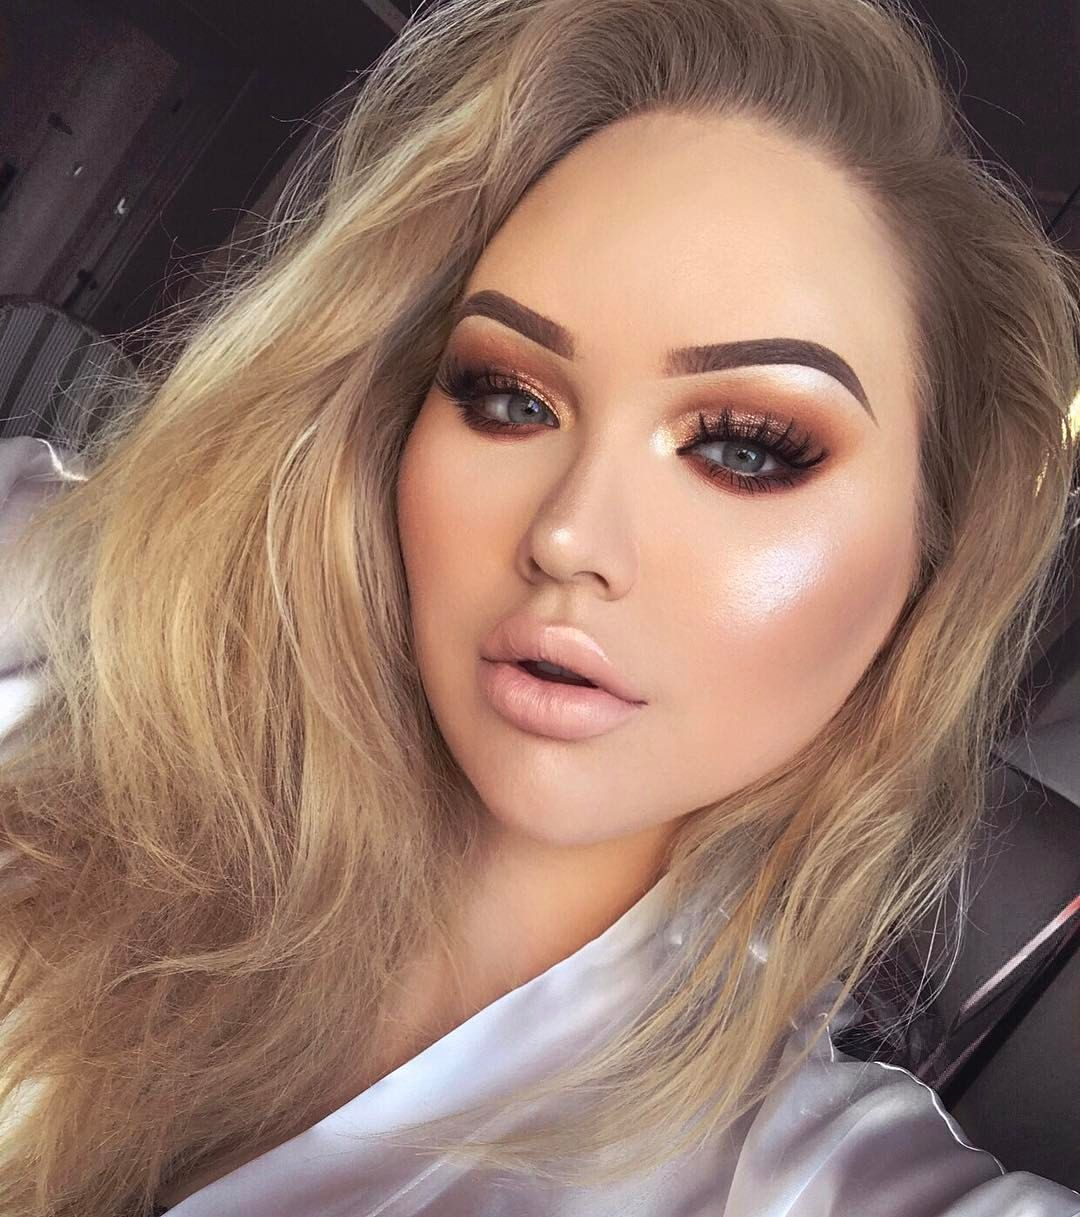 nikkietutorials - photo #4